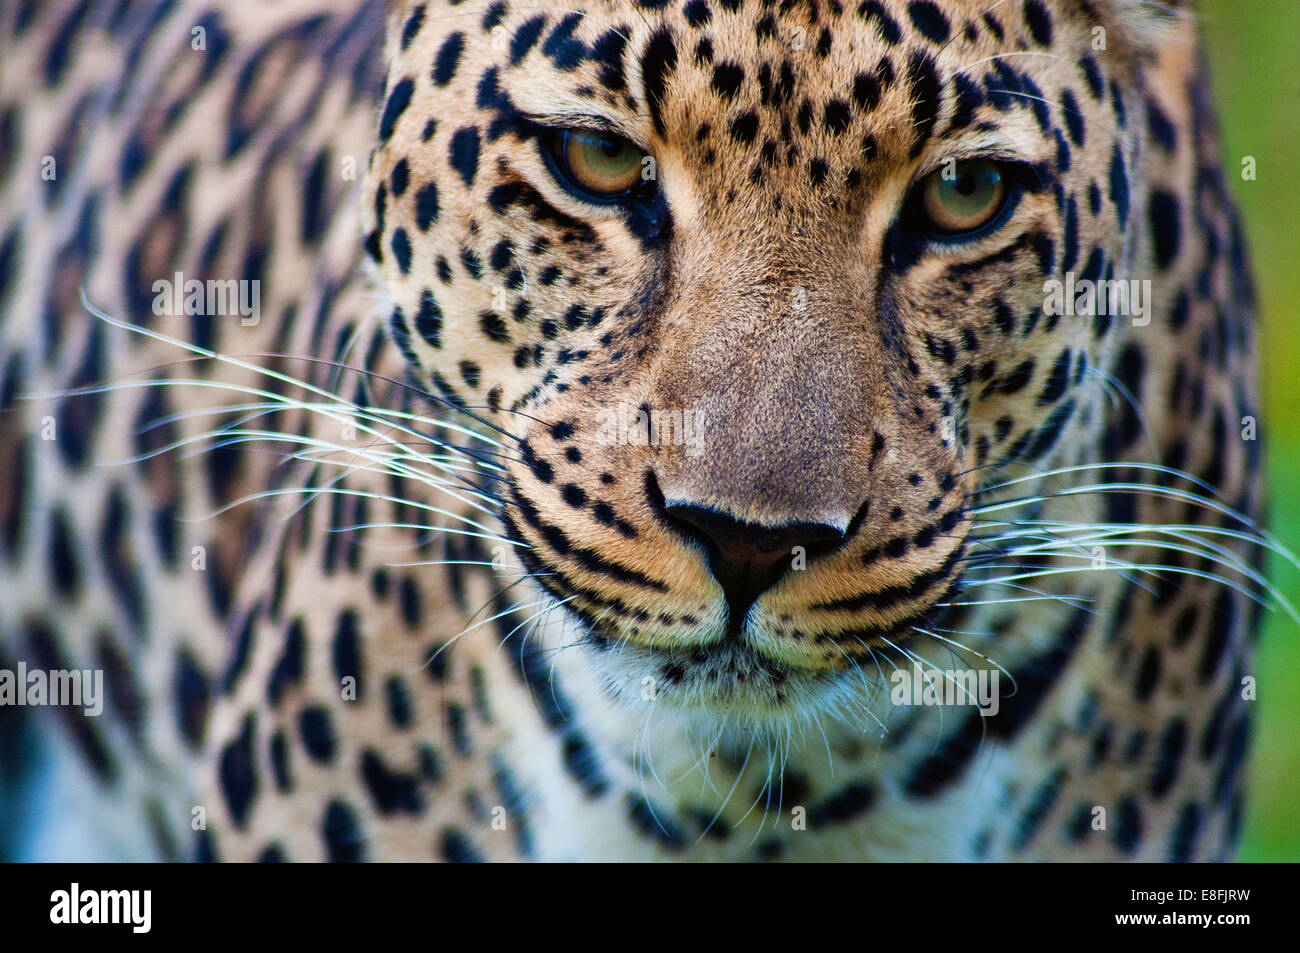 Portrait of a leopard, Mpumalanga, South Africa - Stock Image